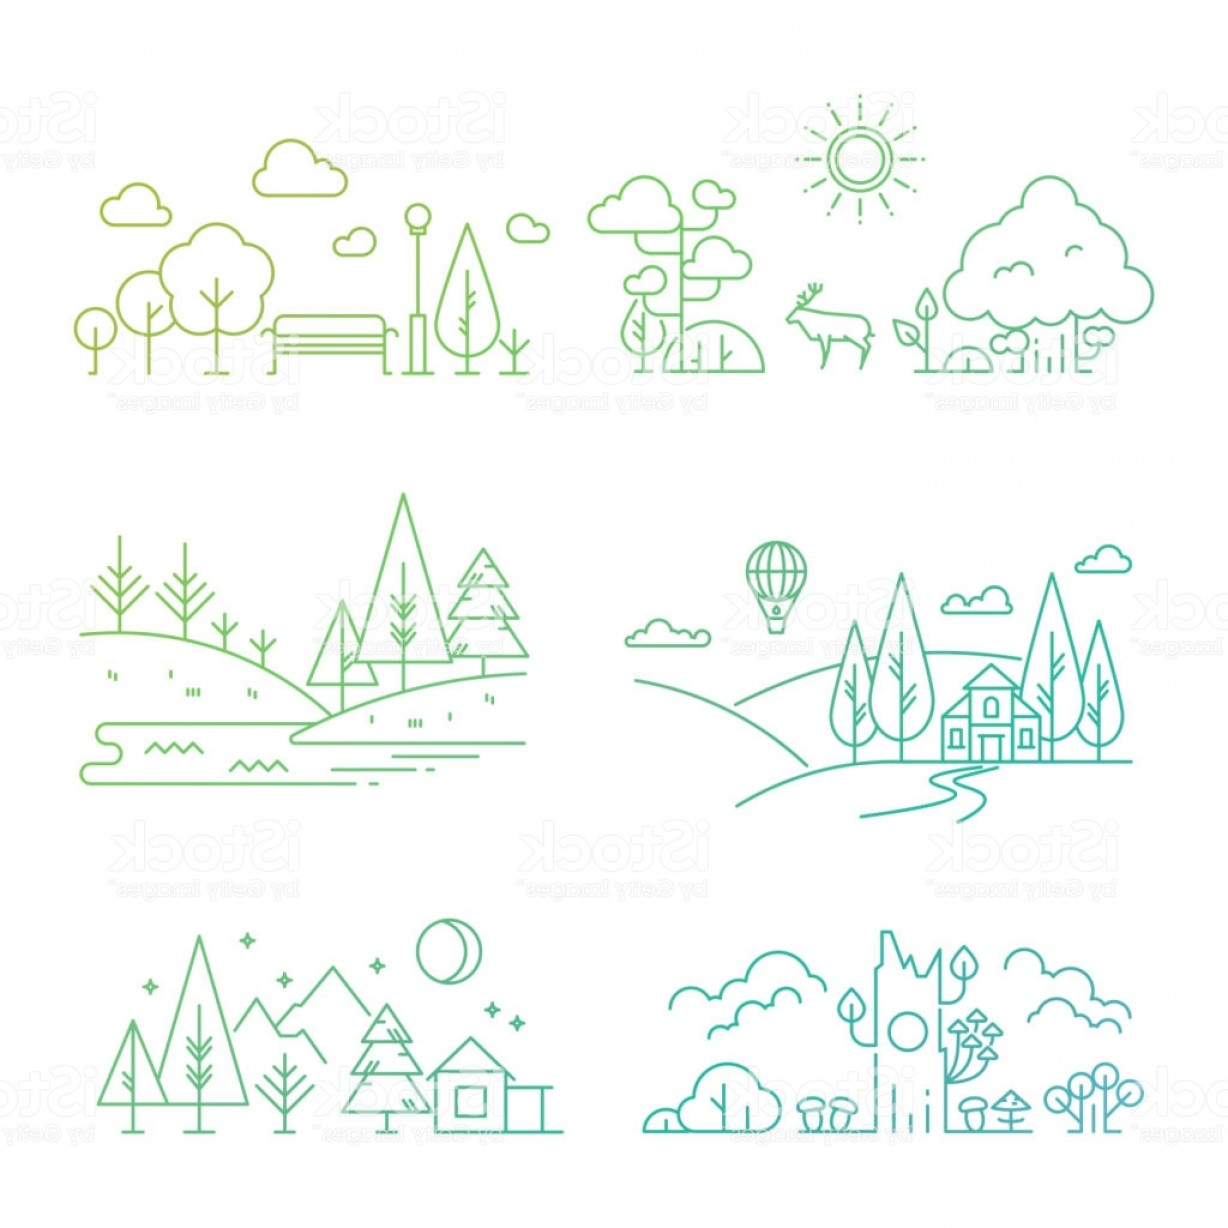 River Vector Art: Nature Landscape Icons With Tree Plants Mountains River Gm